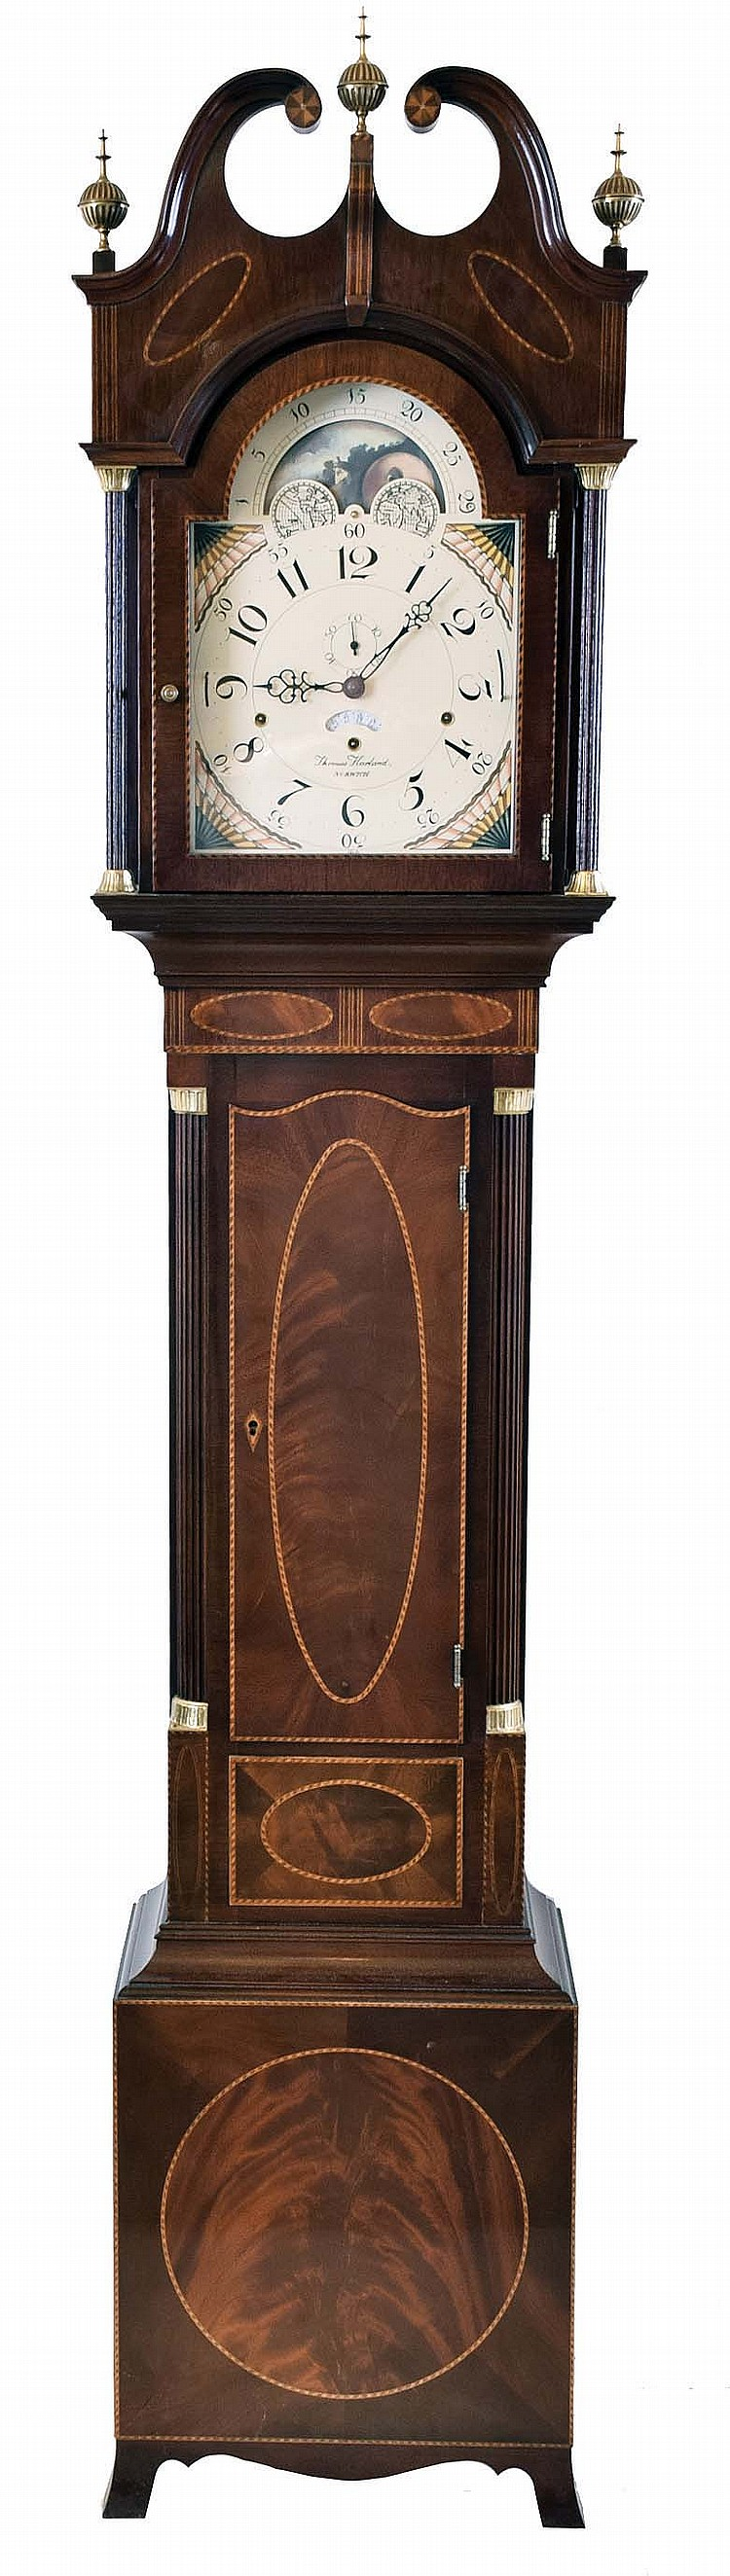 The Henry Ford Museum, Dearborn, Michigan reproduction by Sligh signed Thomas Harland, Norwich Conn., tall case clock, 8 day, time, strike and triple chime, weight driven movement in a mahogany Hepplewhite style case with three brass finials, full